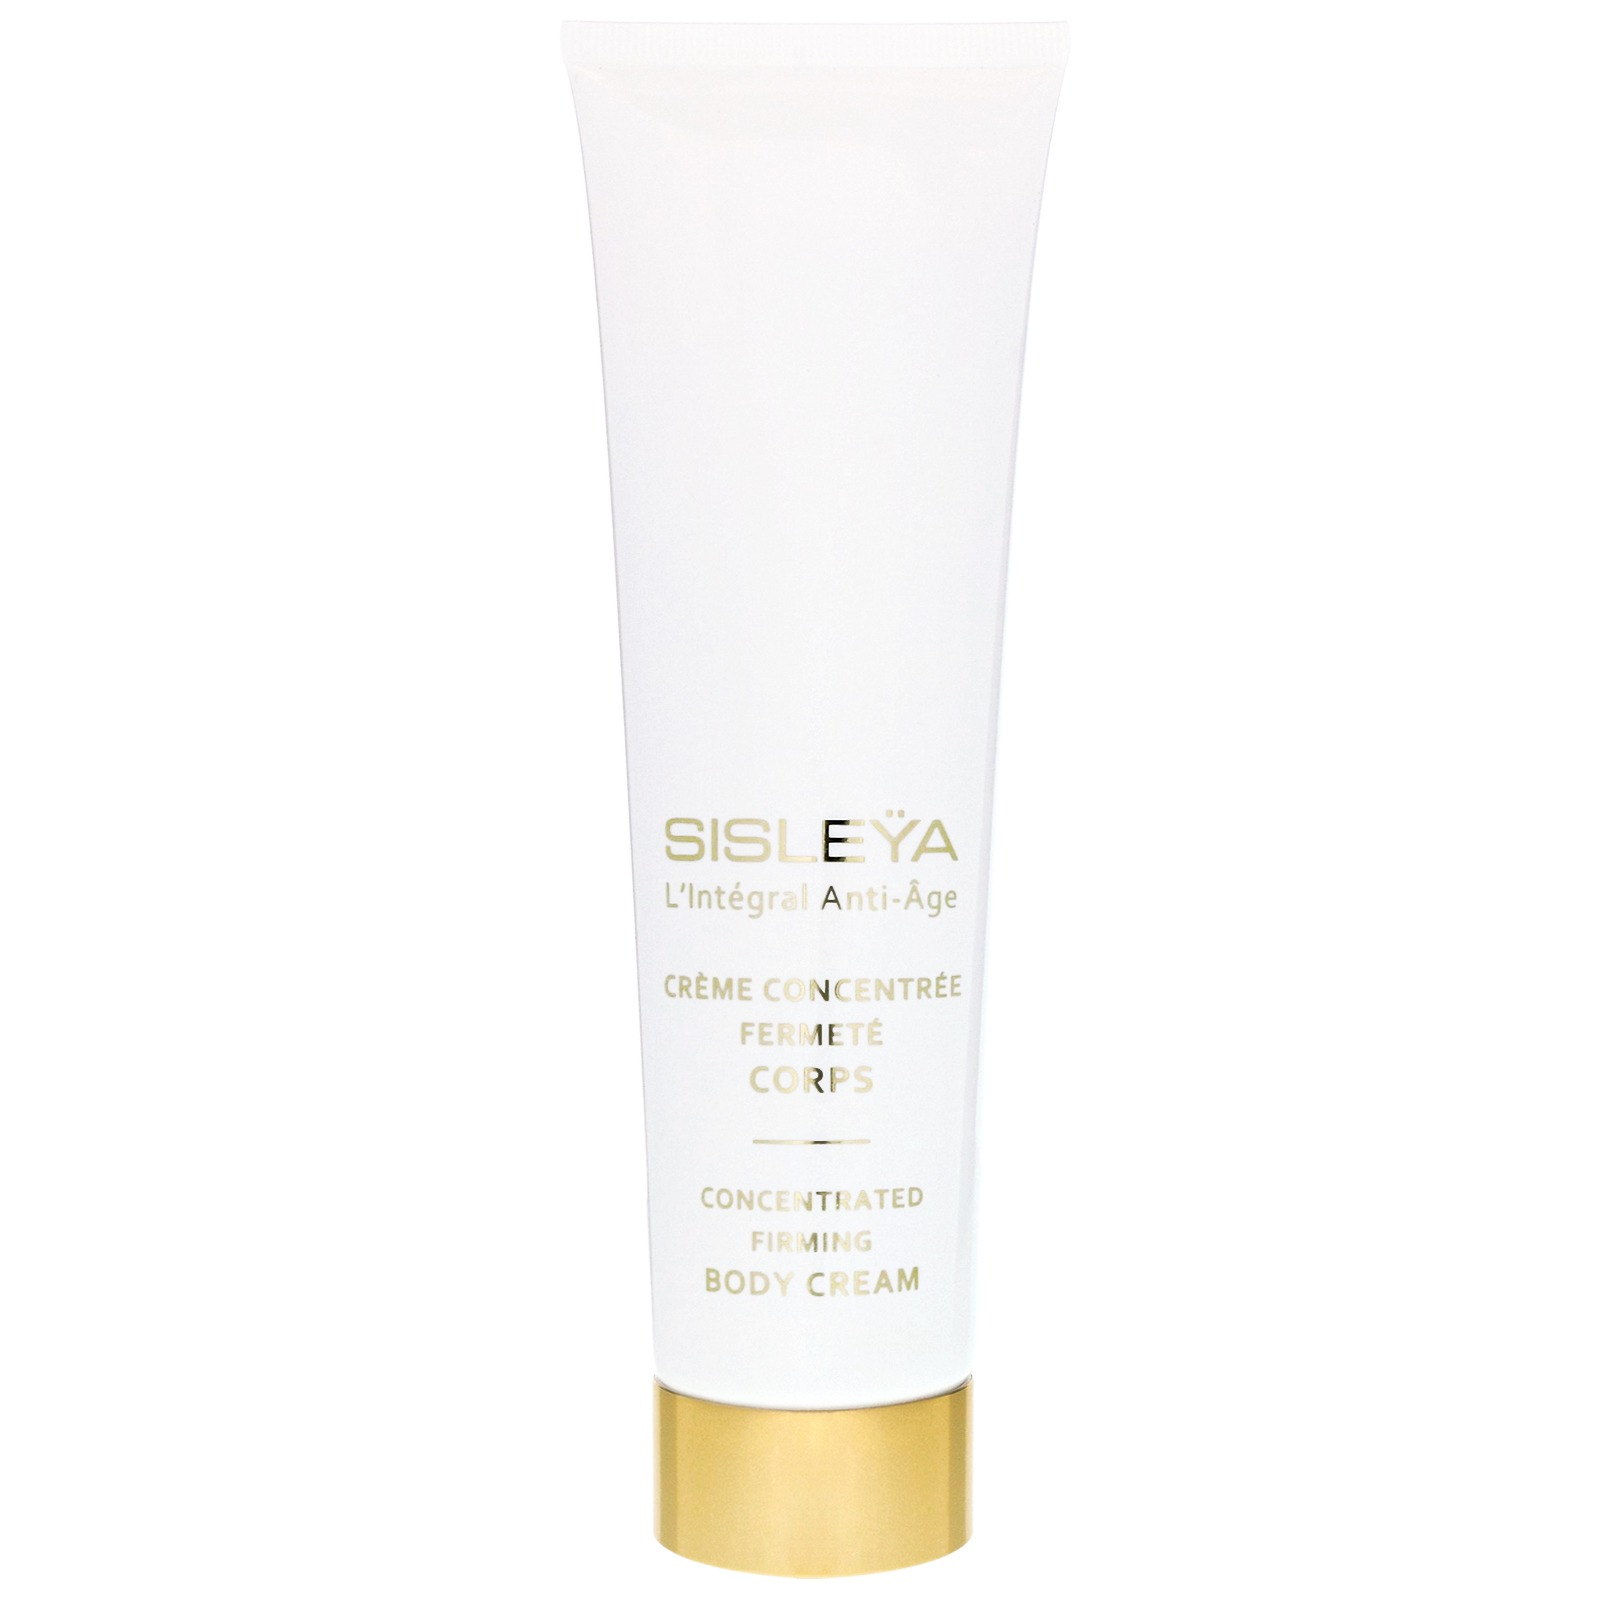 Sisley Sisleÿa L'Integral Anti-Age Concentrated Firming Body Care 150ml